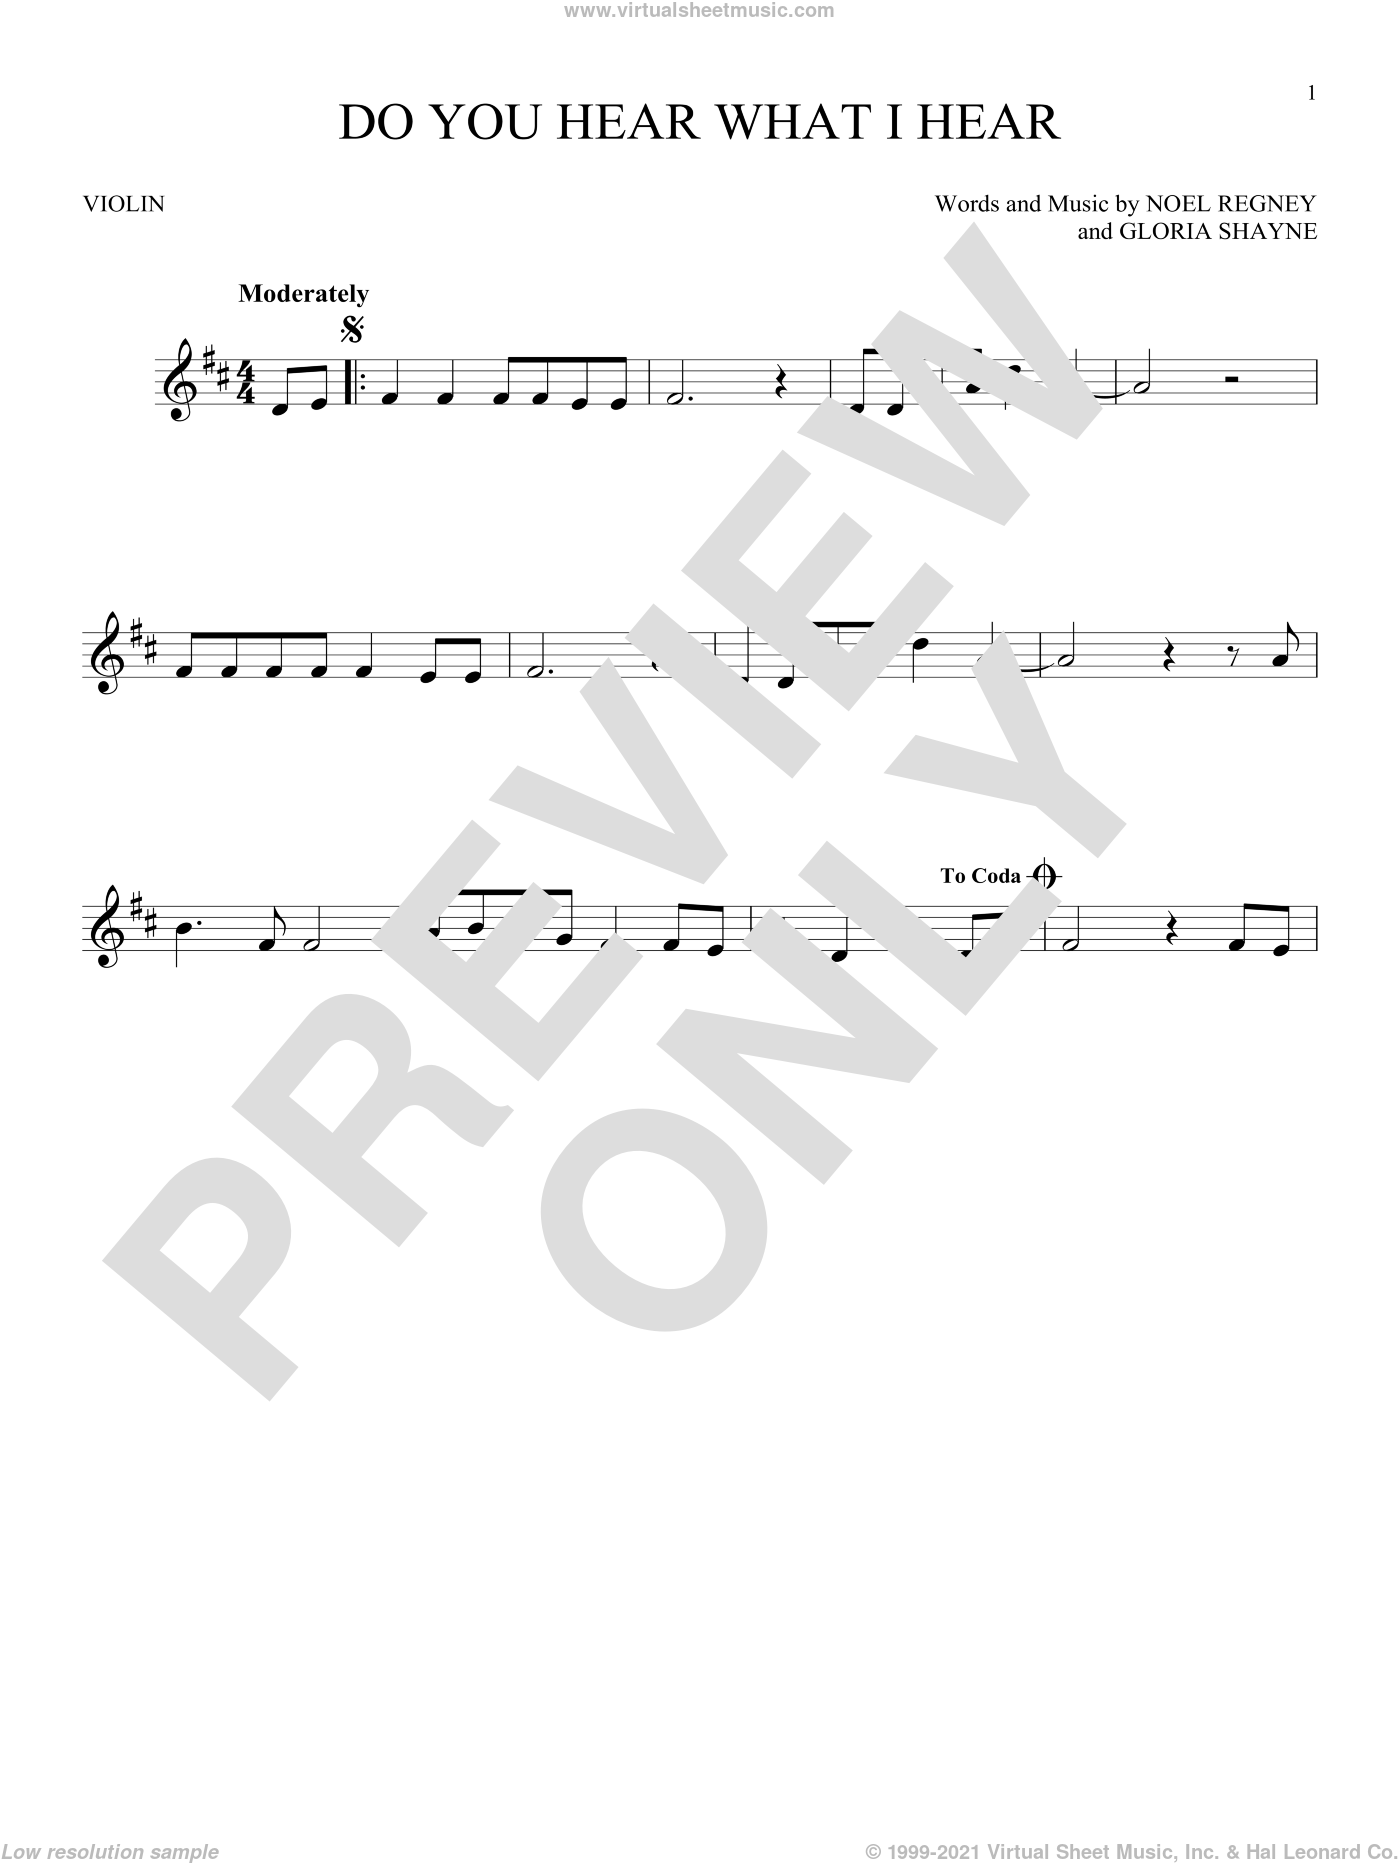 Do You Hear What I Hear sheet music for violin solo by Gloria Shayne, Carole King, Carrie Underwood, Susan Boyle feat. Amber Stassi, Noel Regney and Noel Regney & Gloria Shayne, intermediate skill level